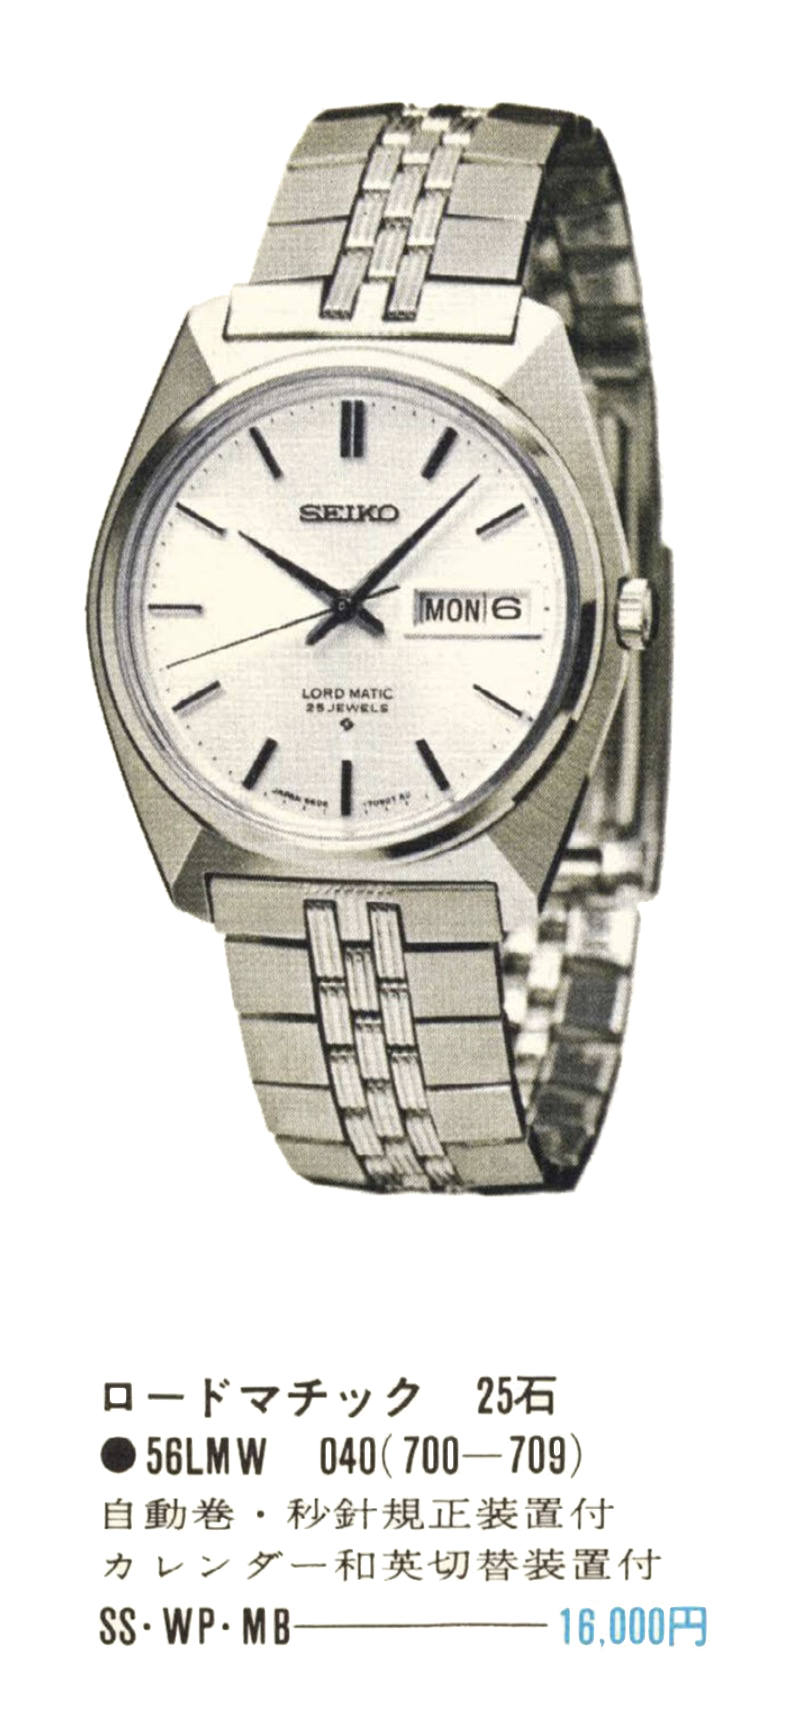 Seiko Lord-Matic 5606-7000 (Incoming)